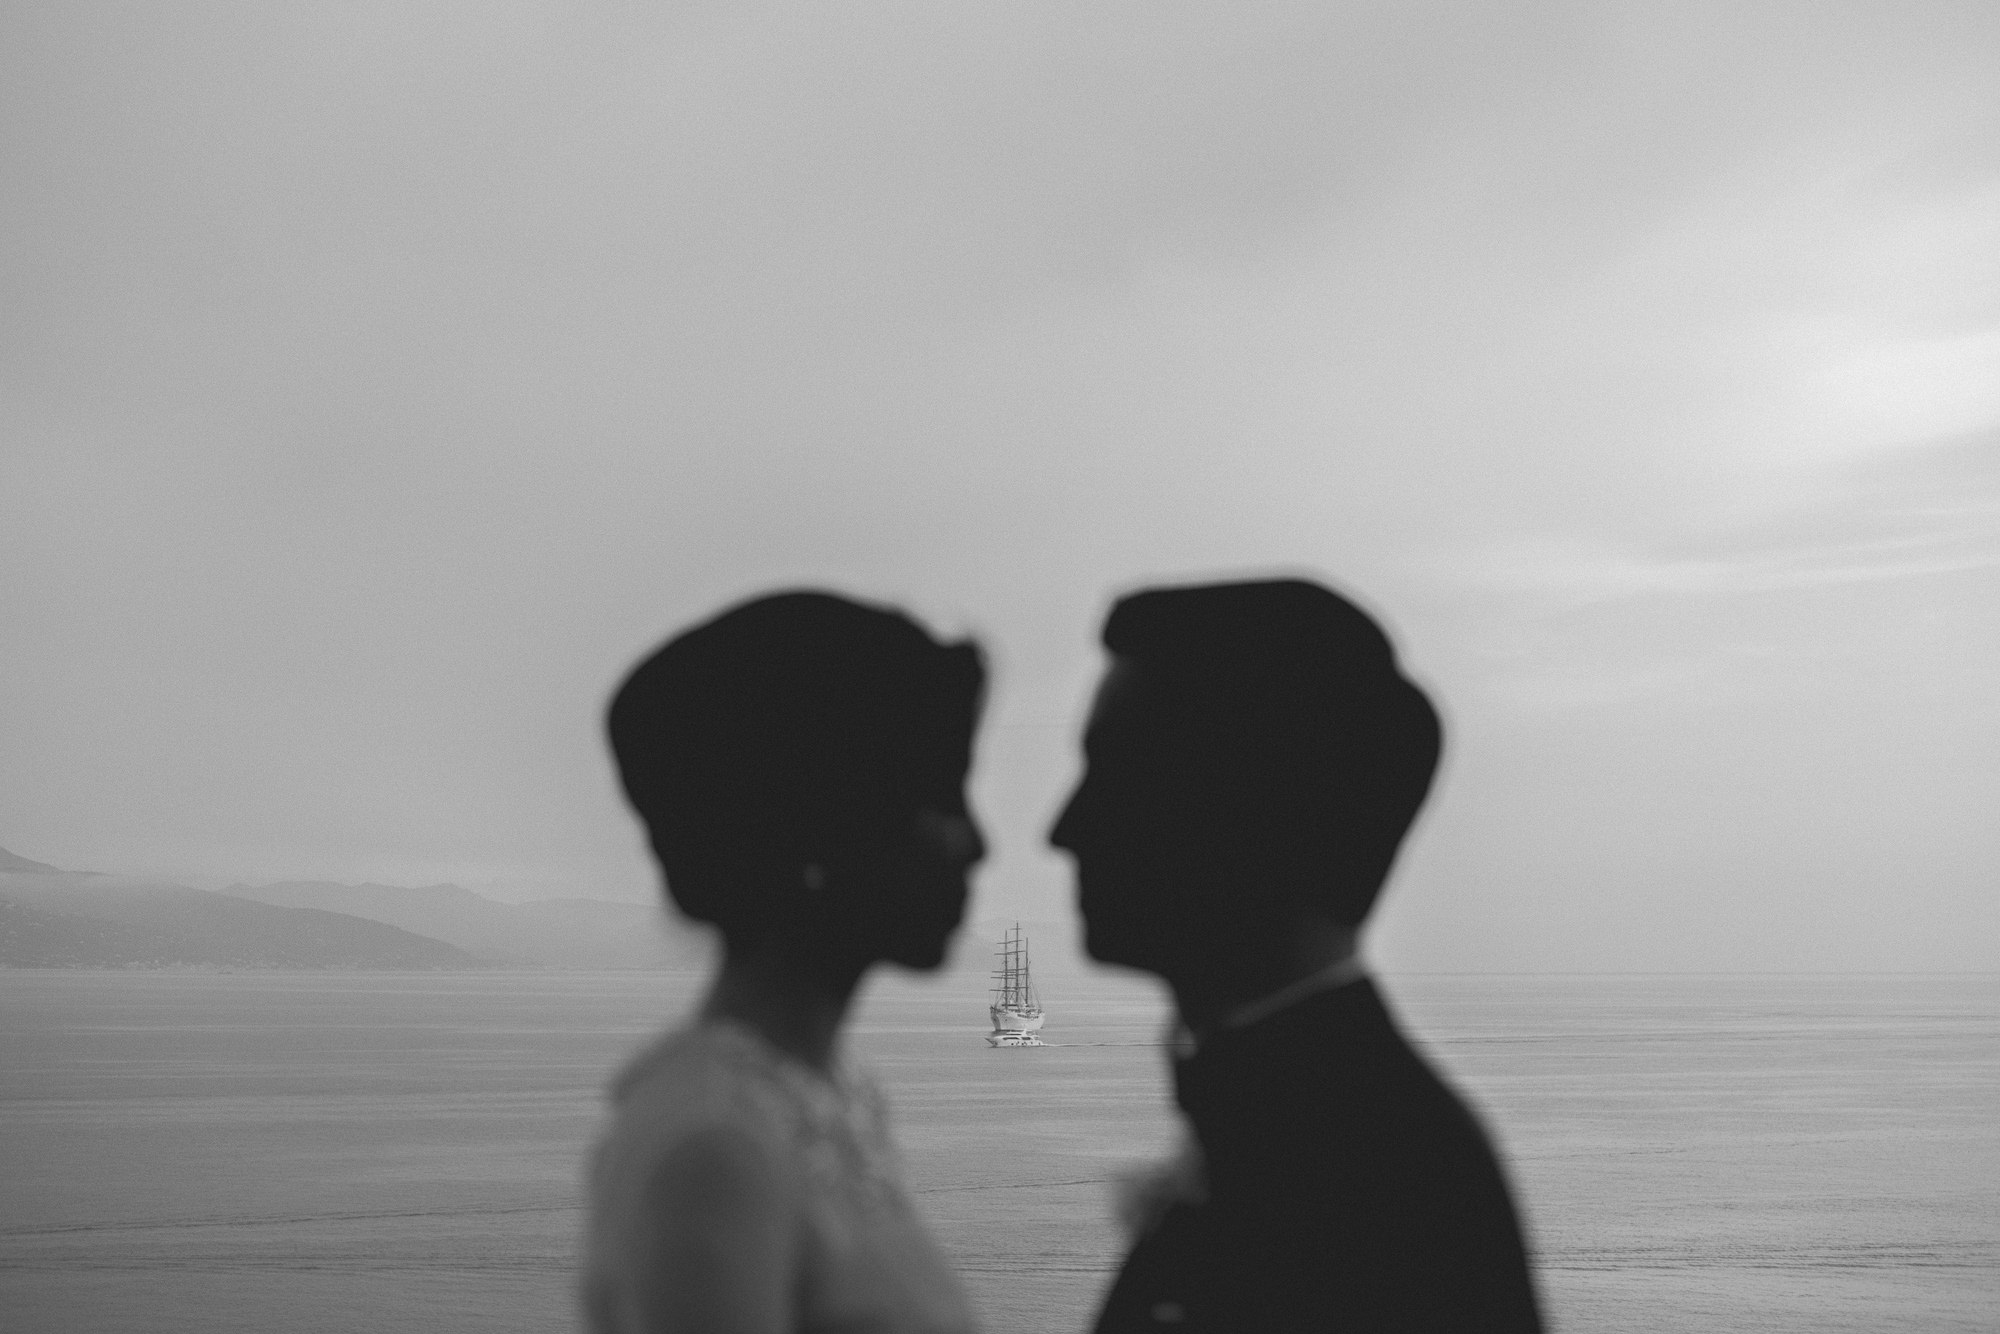 Black and white photo of couple's silhouette with ship in background, by Thierry Joubert